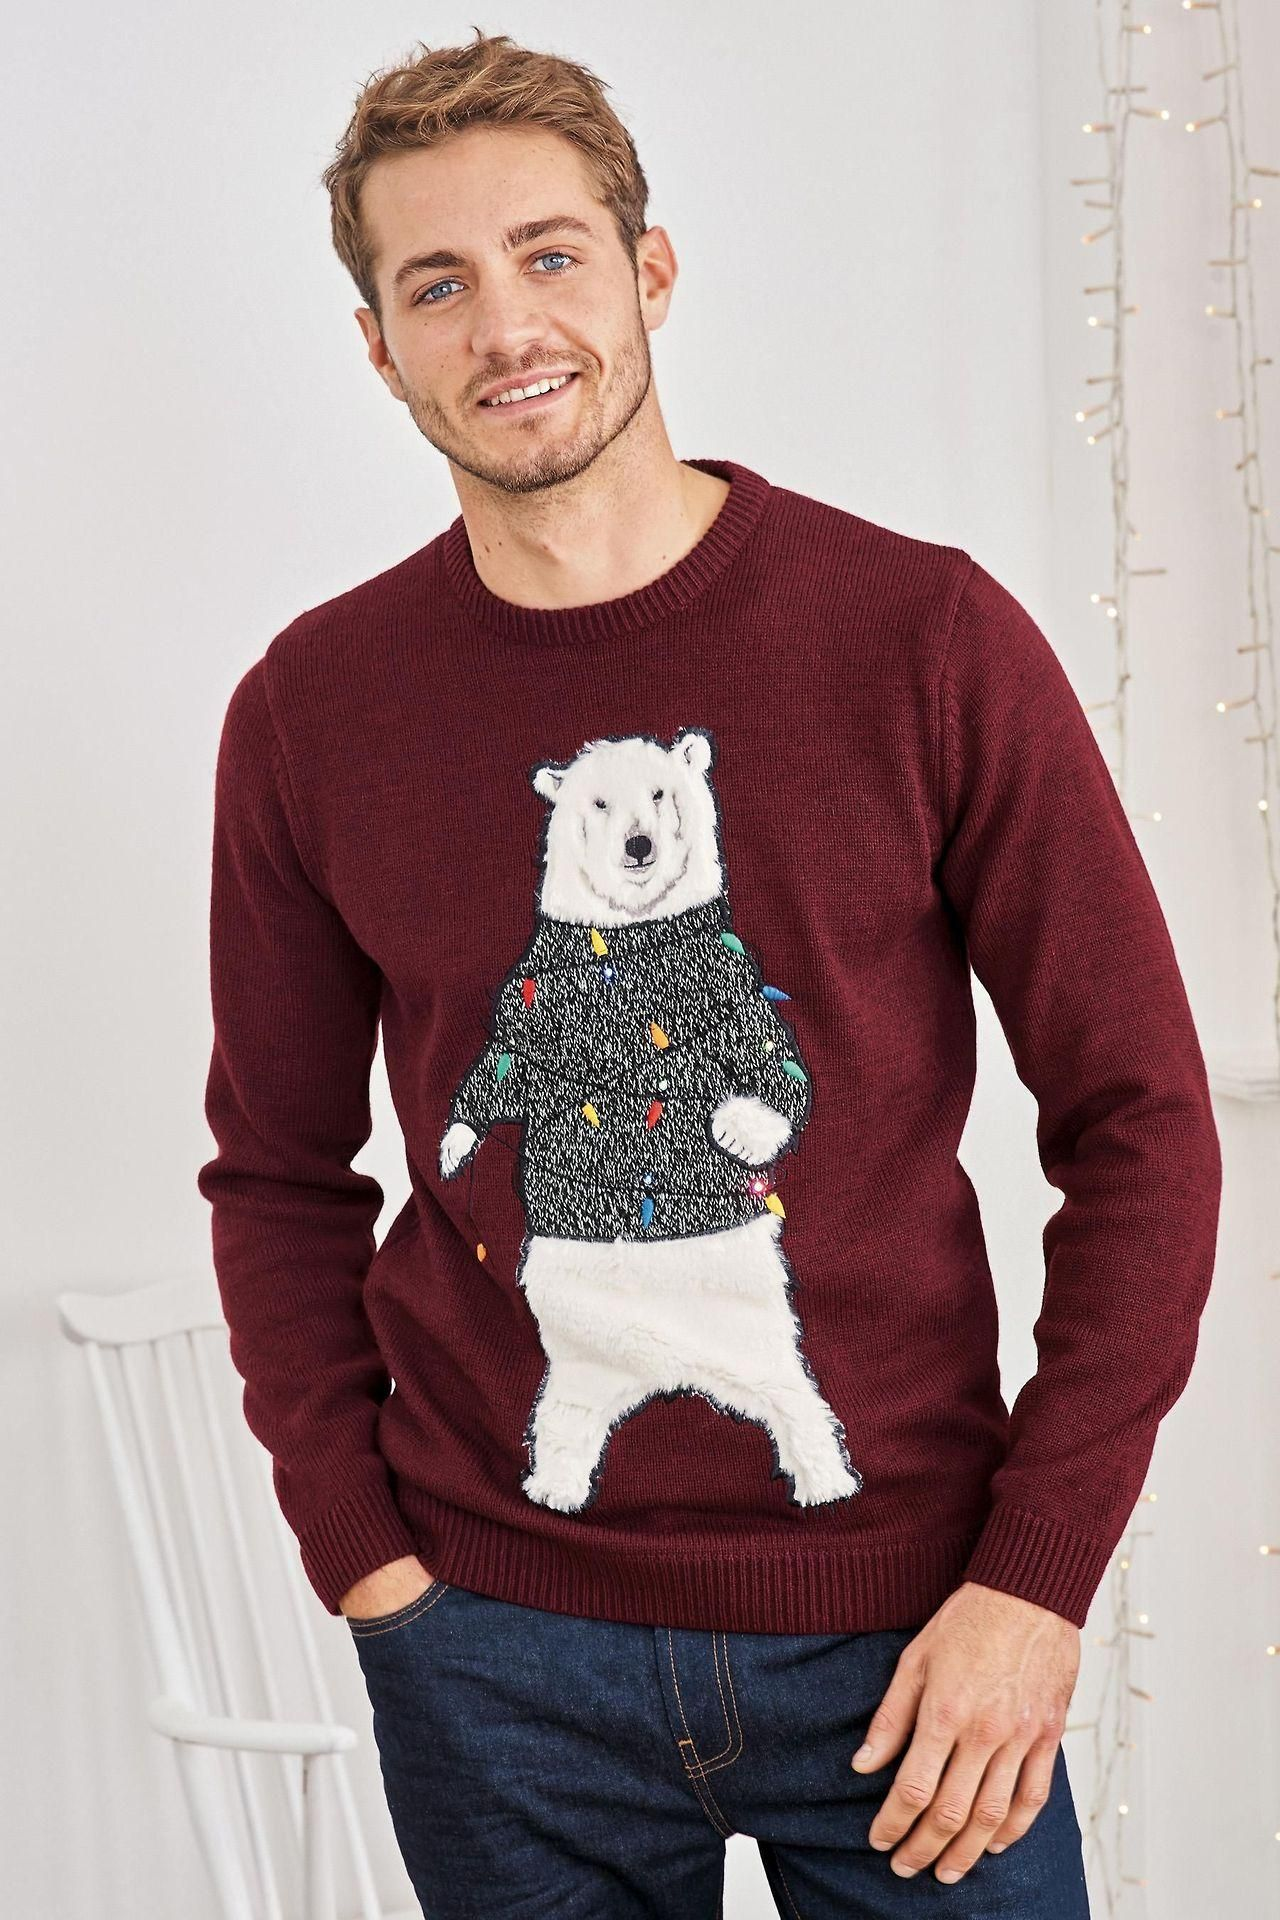 Image result for Will Higginson Christmas sweater men